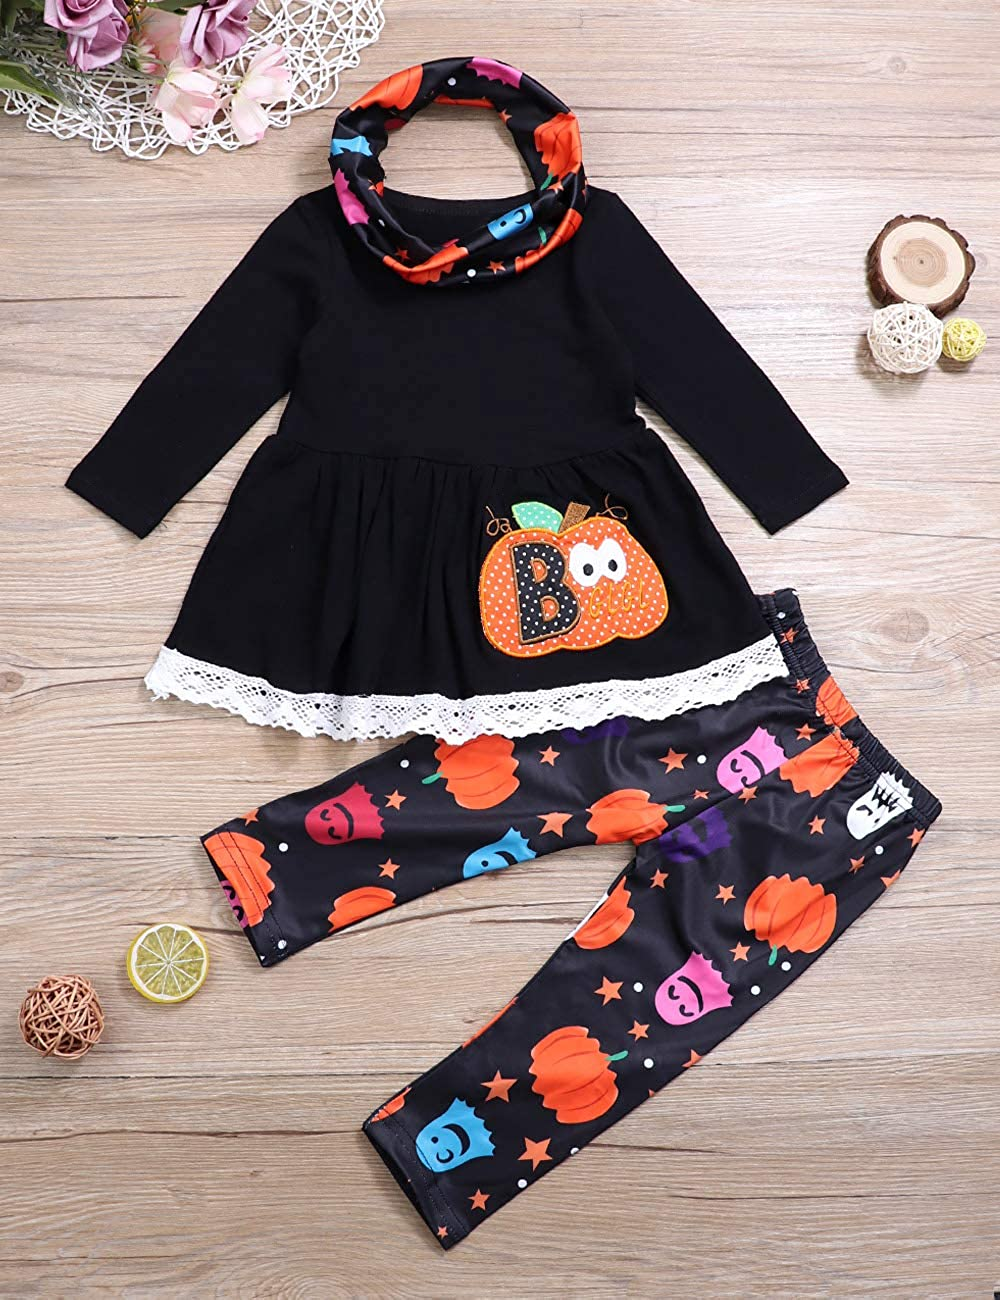 Toddler Little Girl Clothes Halloween Pumpkin Outfit Leggings with Headband Clothes Set for Girl 2-7T